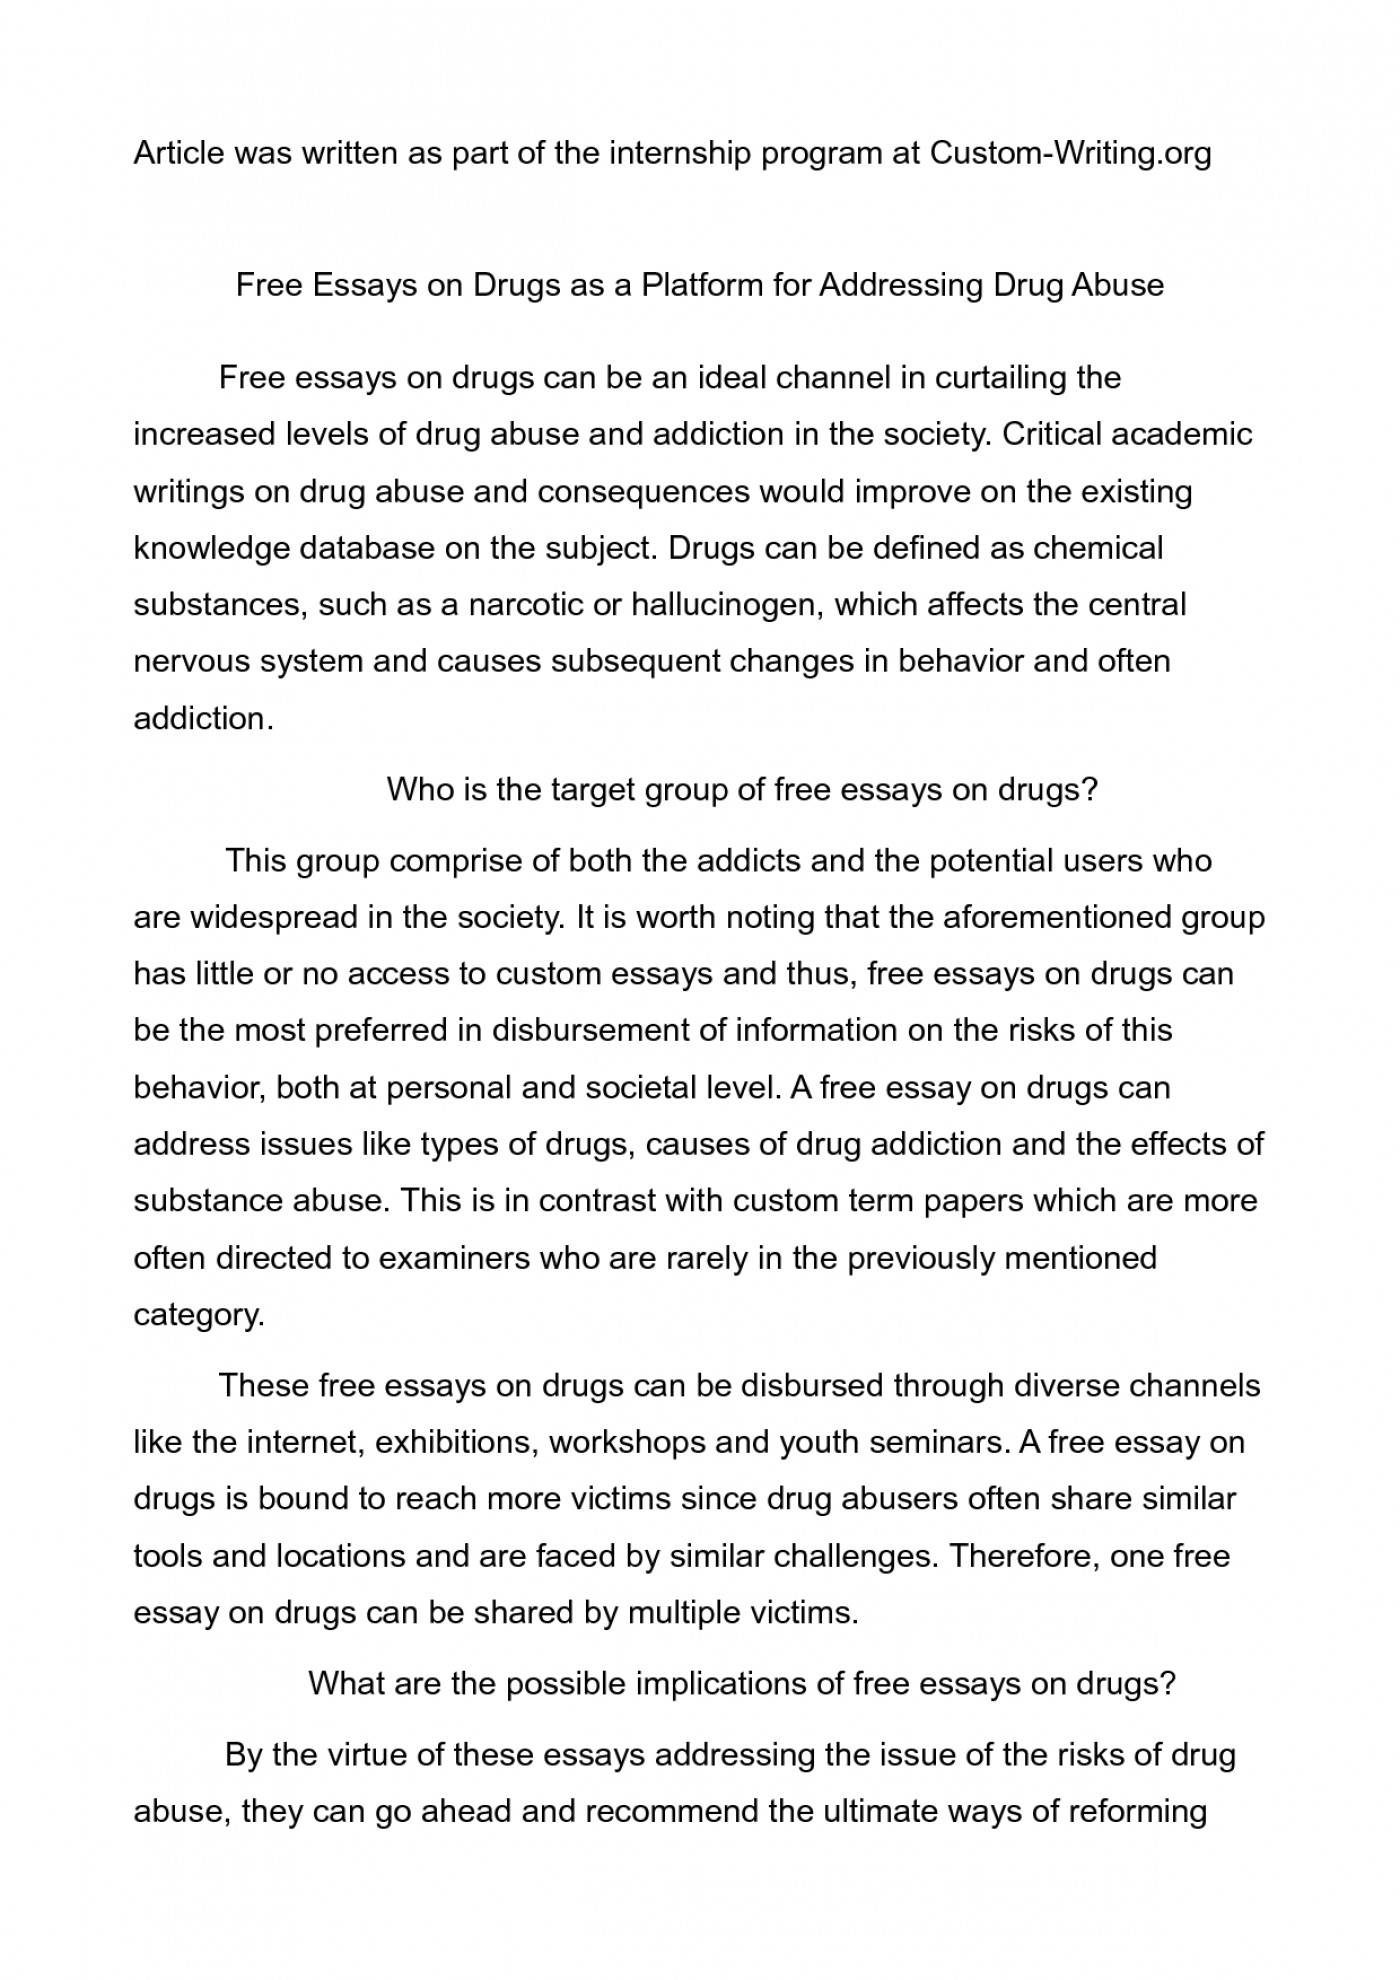 009 Argumentative Essay About Drugs Amazing Sample 6th Grade Introduction Format 1400